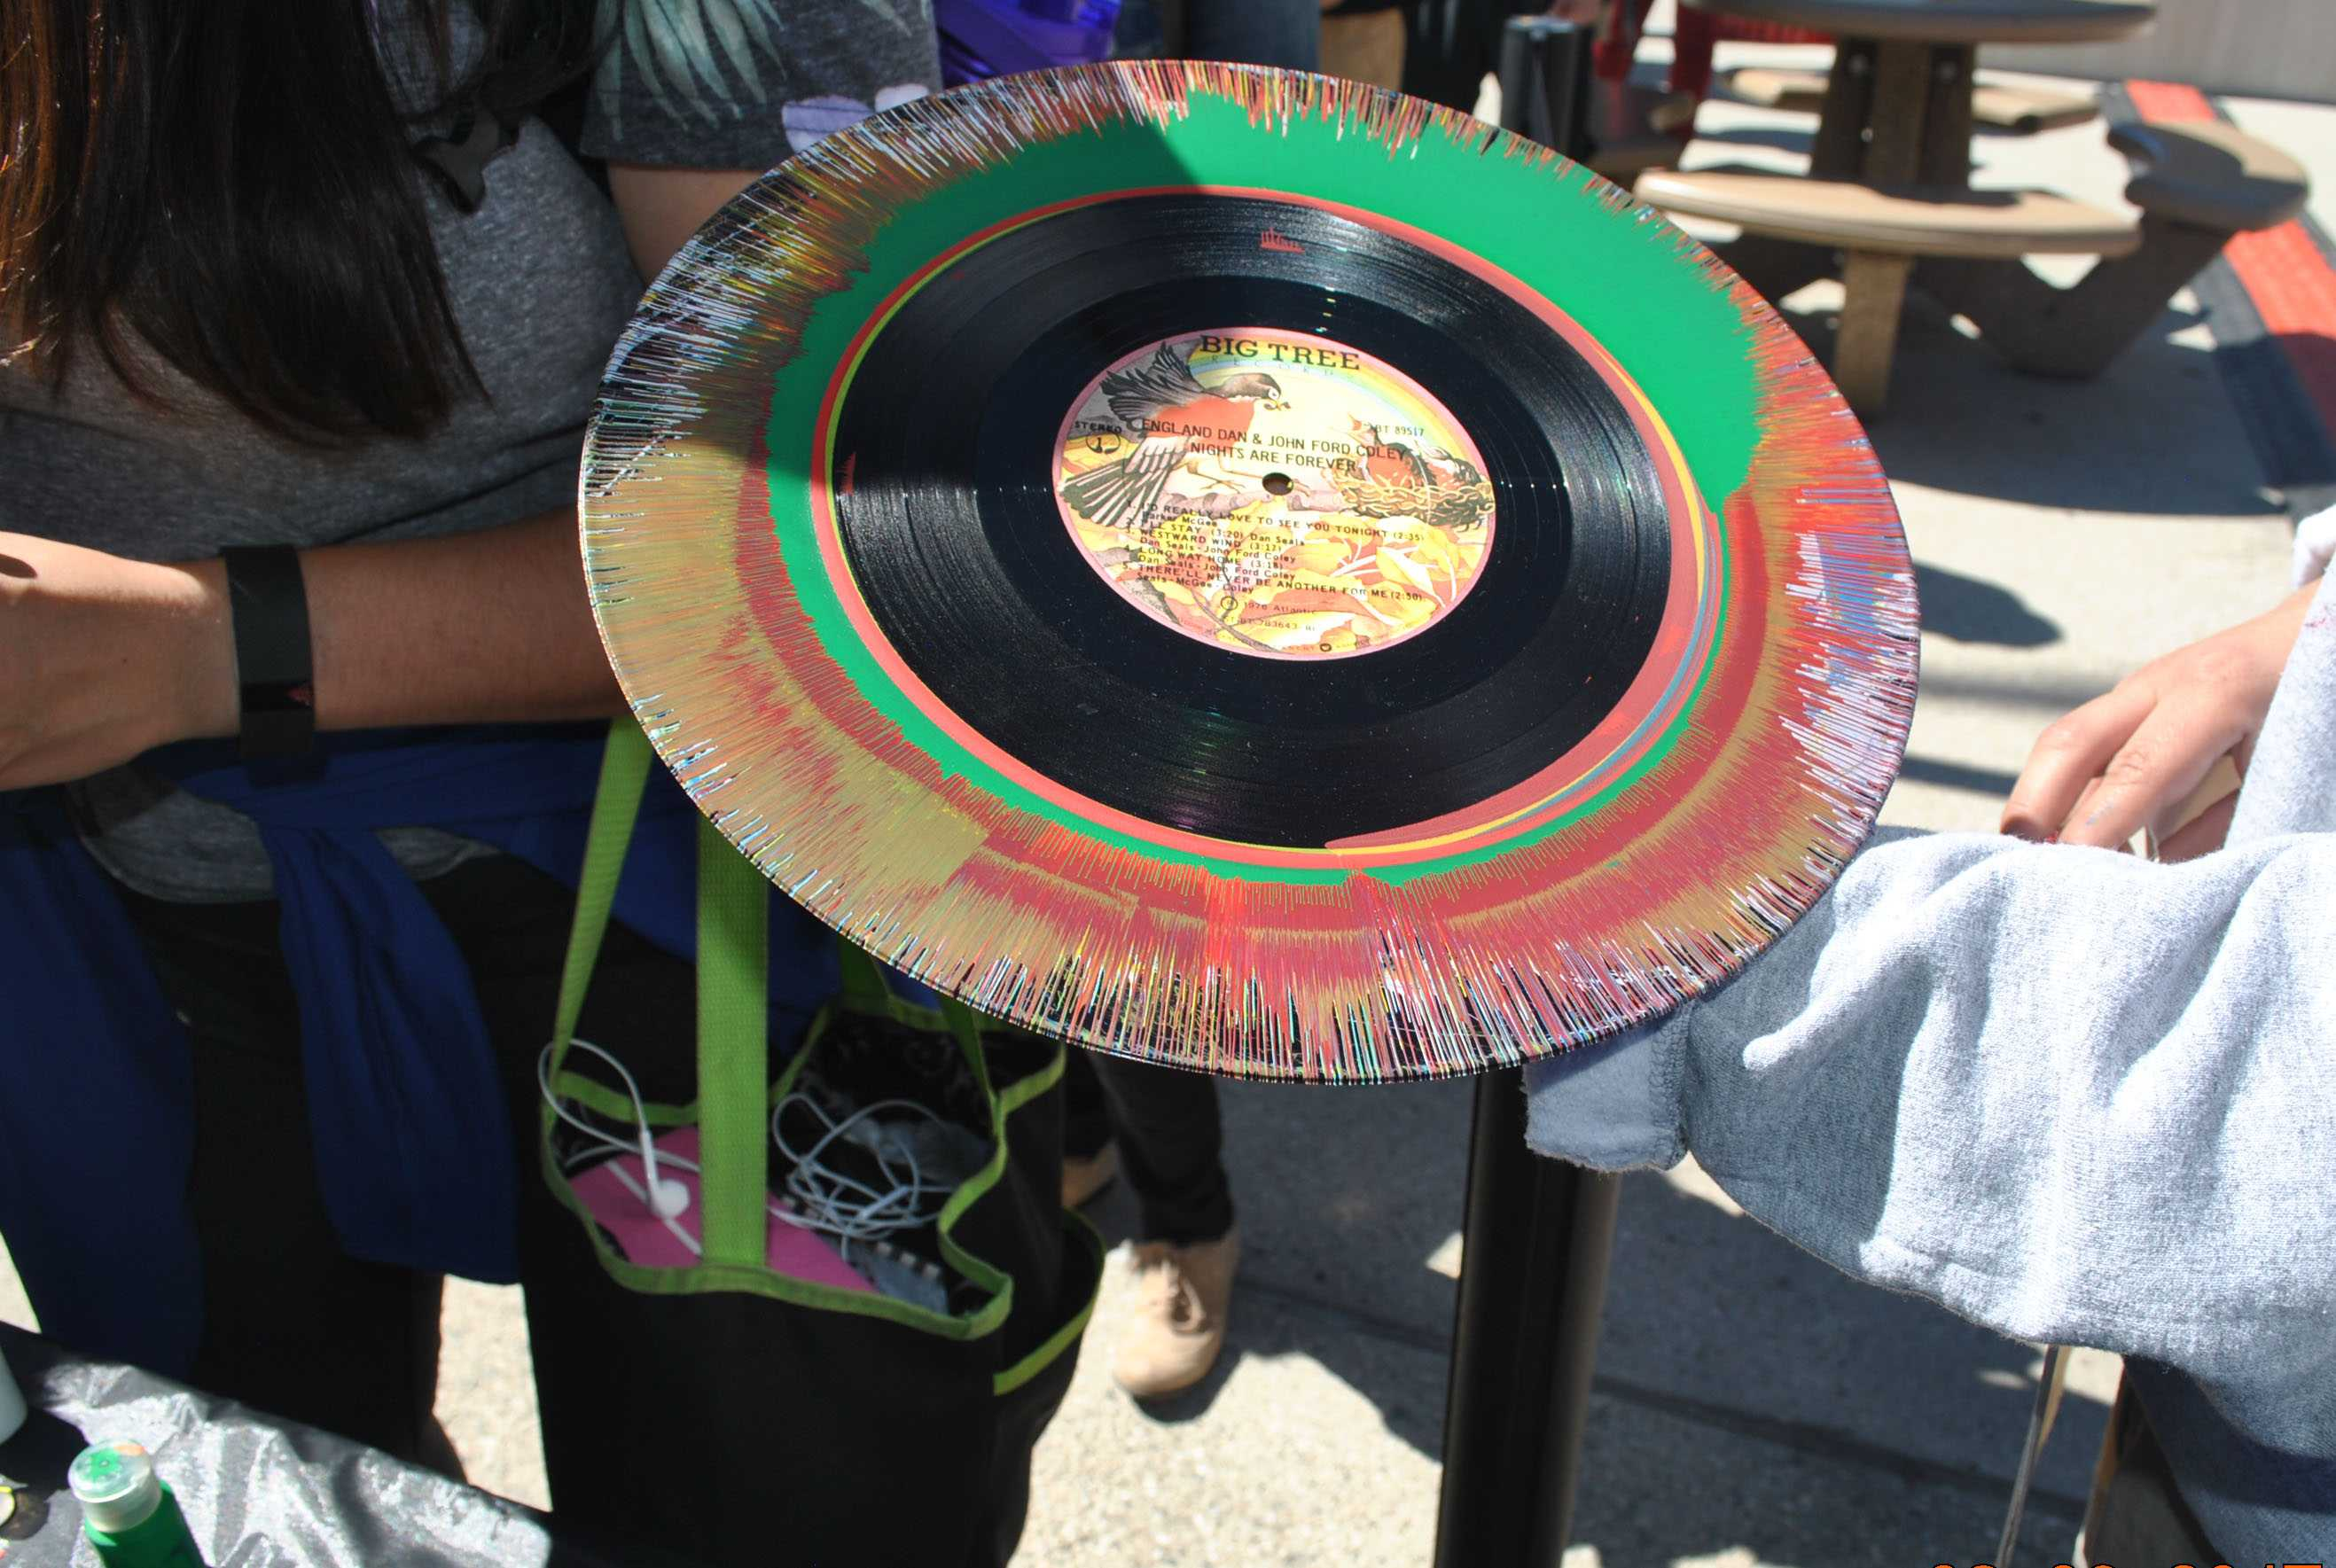 painted record pictured